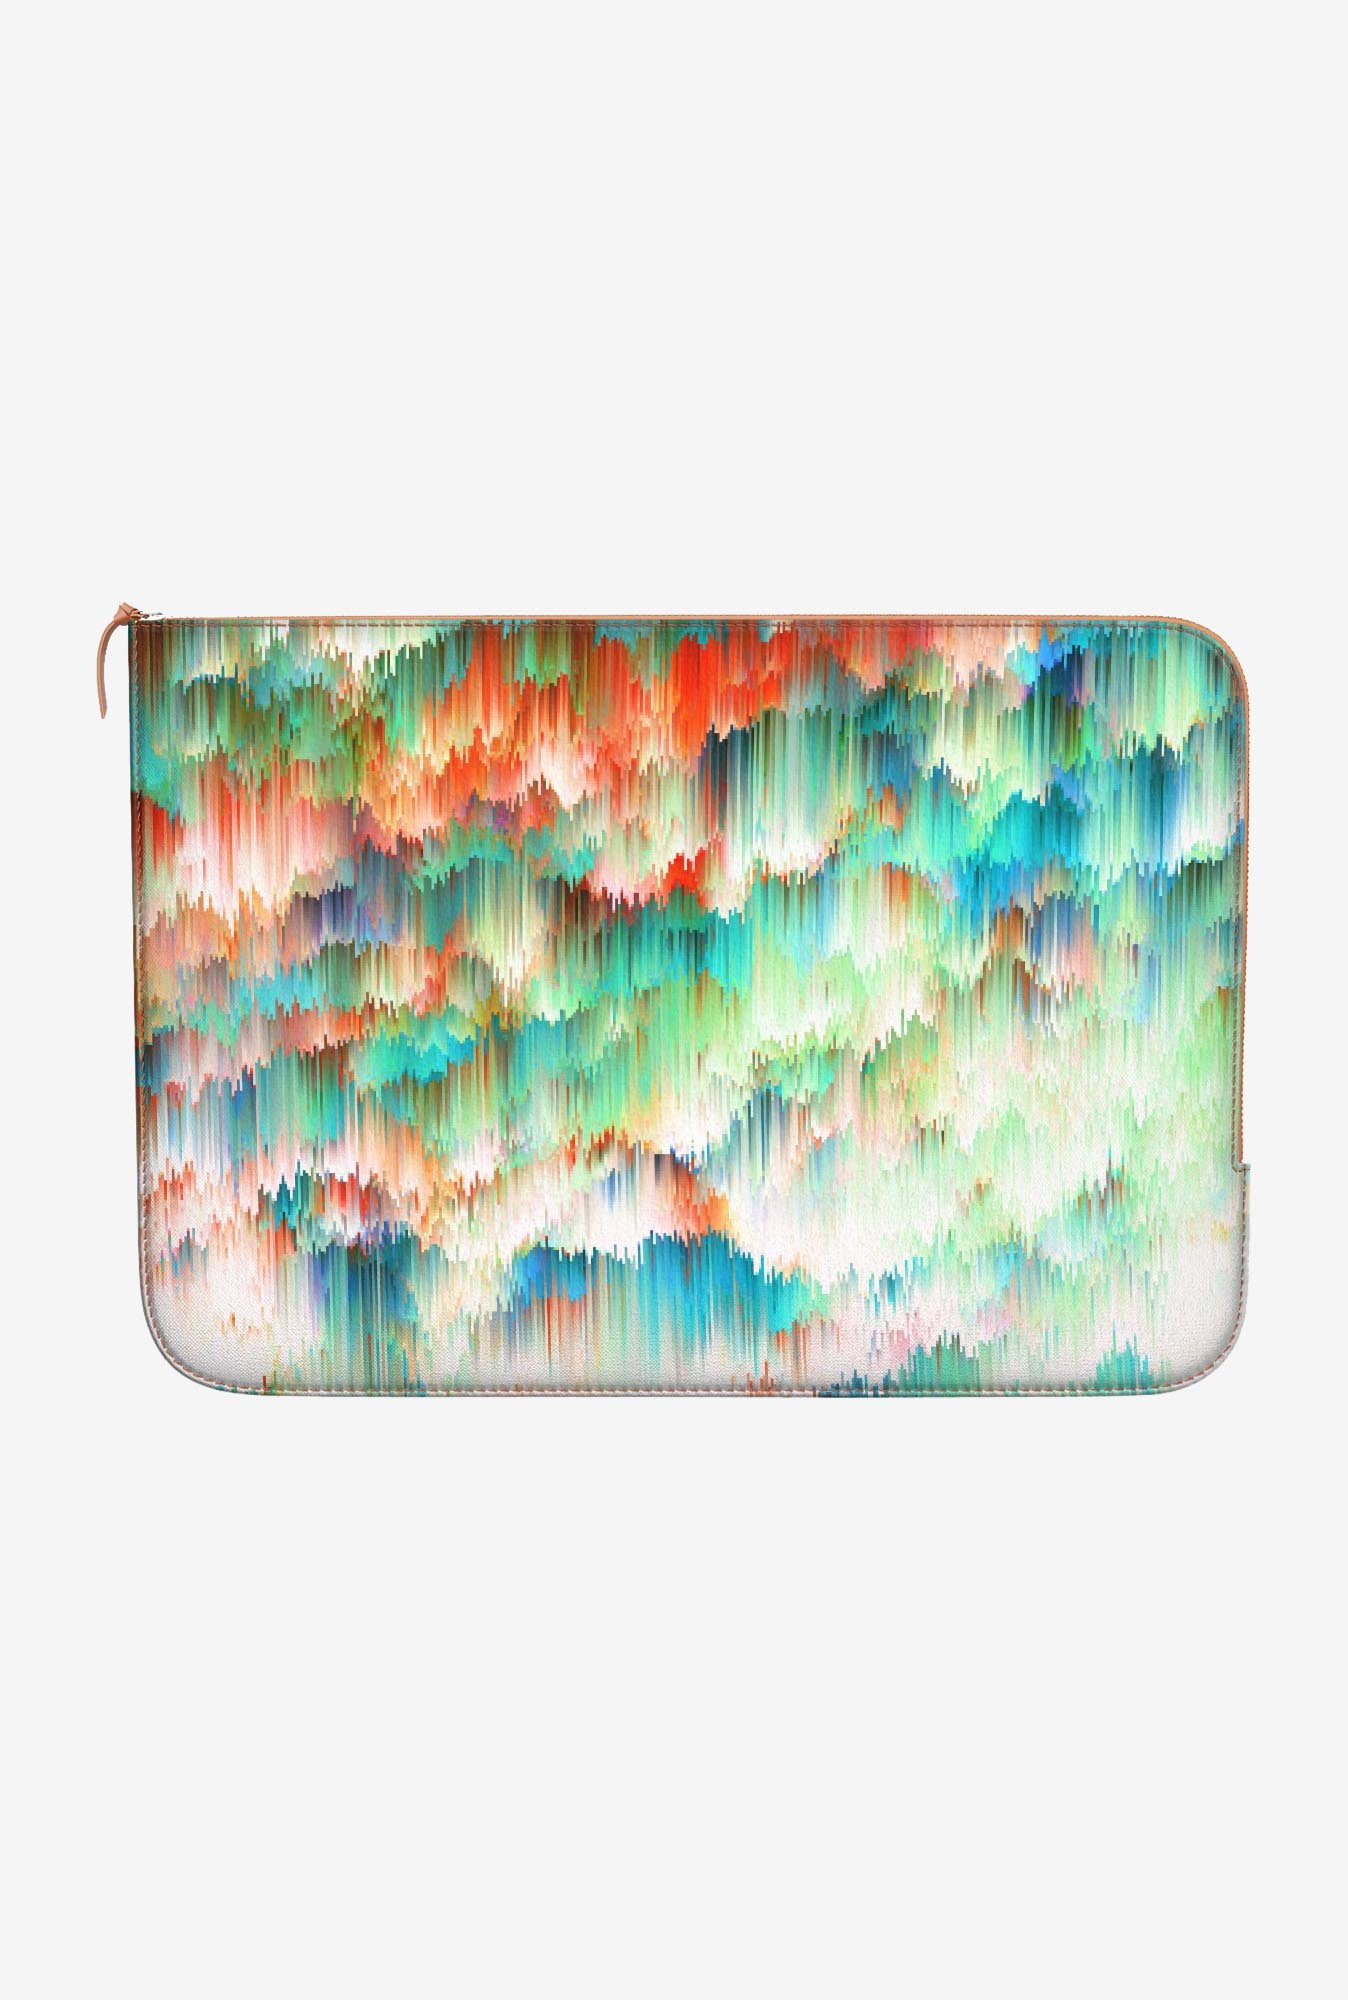 DailyObjects Raindown MacBook Pro 13 Zippered Sleeve